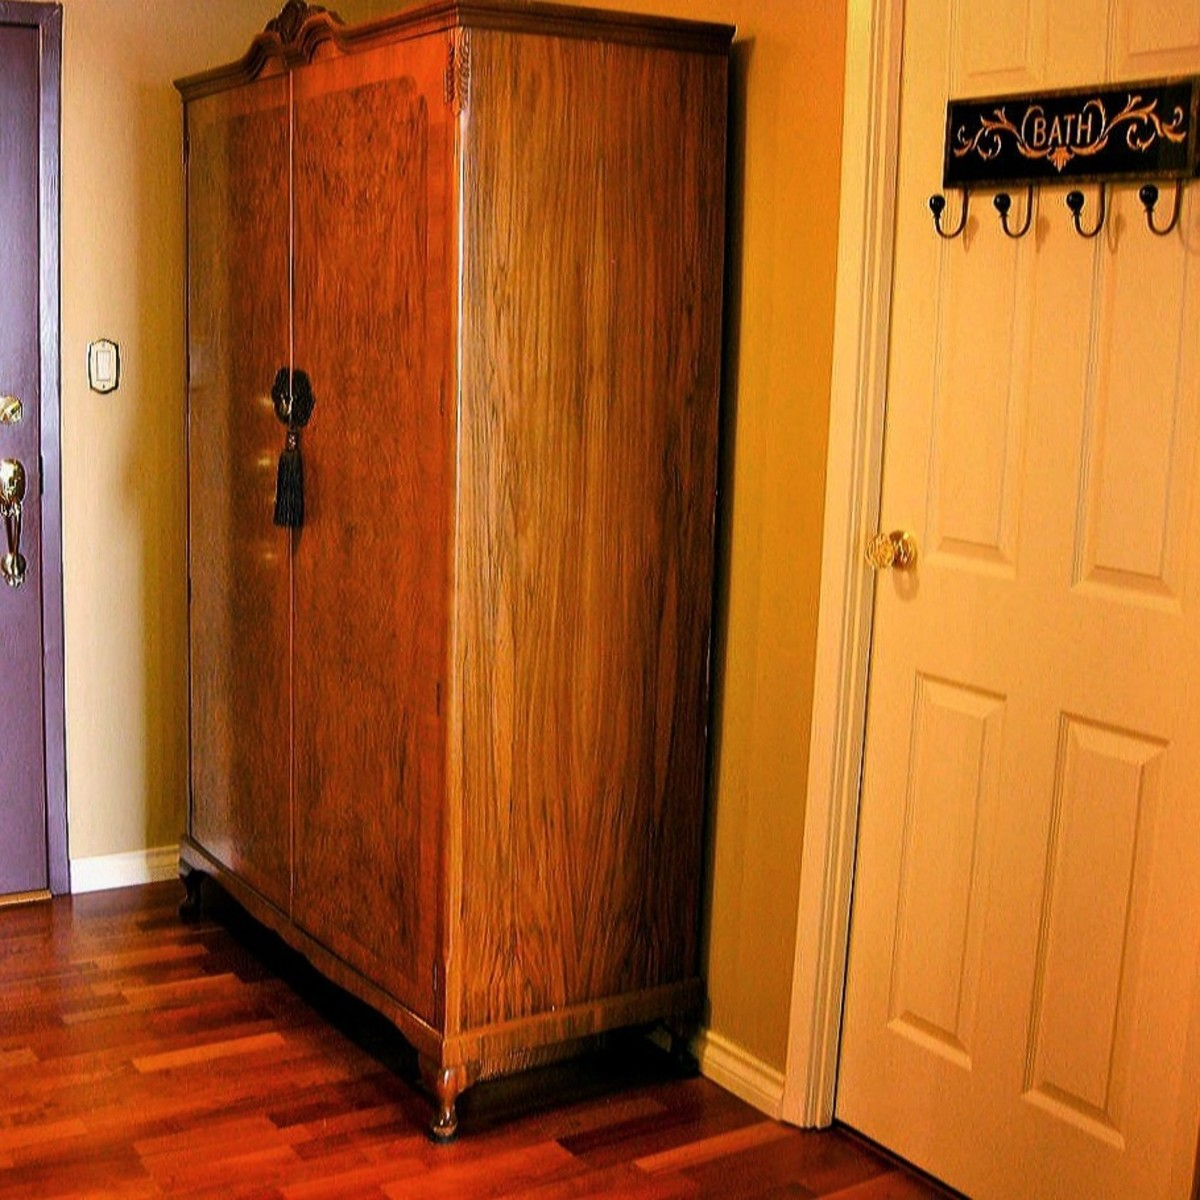 The Versatile Factor. A wardrobe is an incredibly versatile piece of furniture that you can find a use for in practically any home.